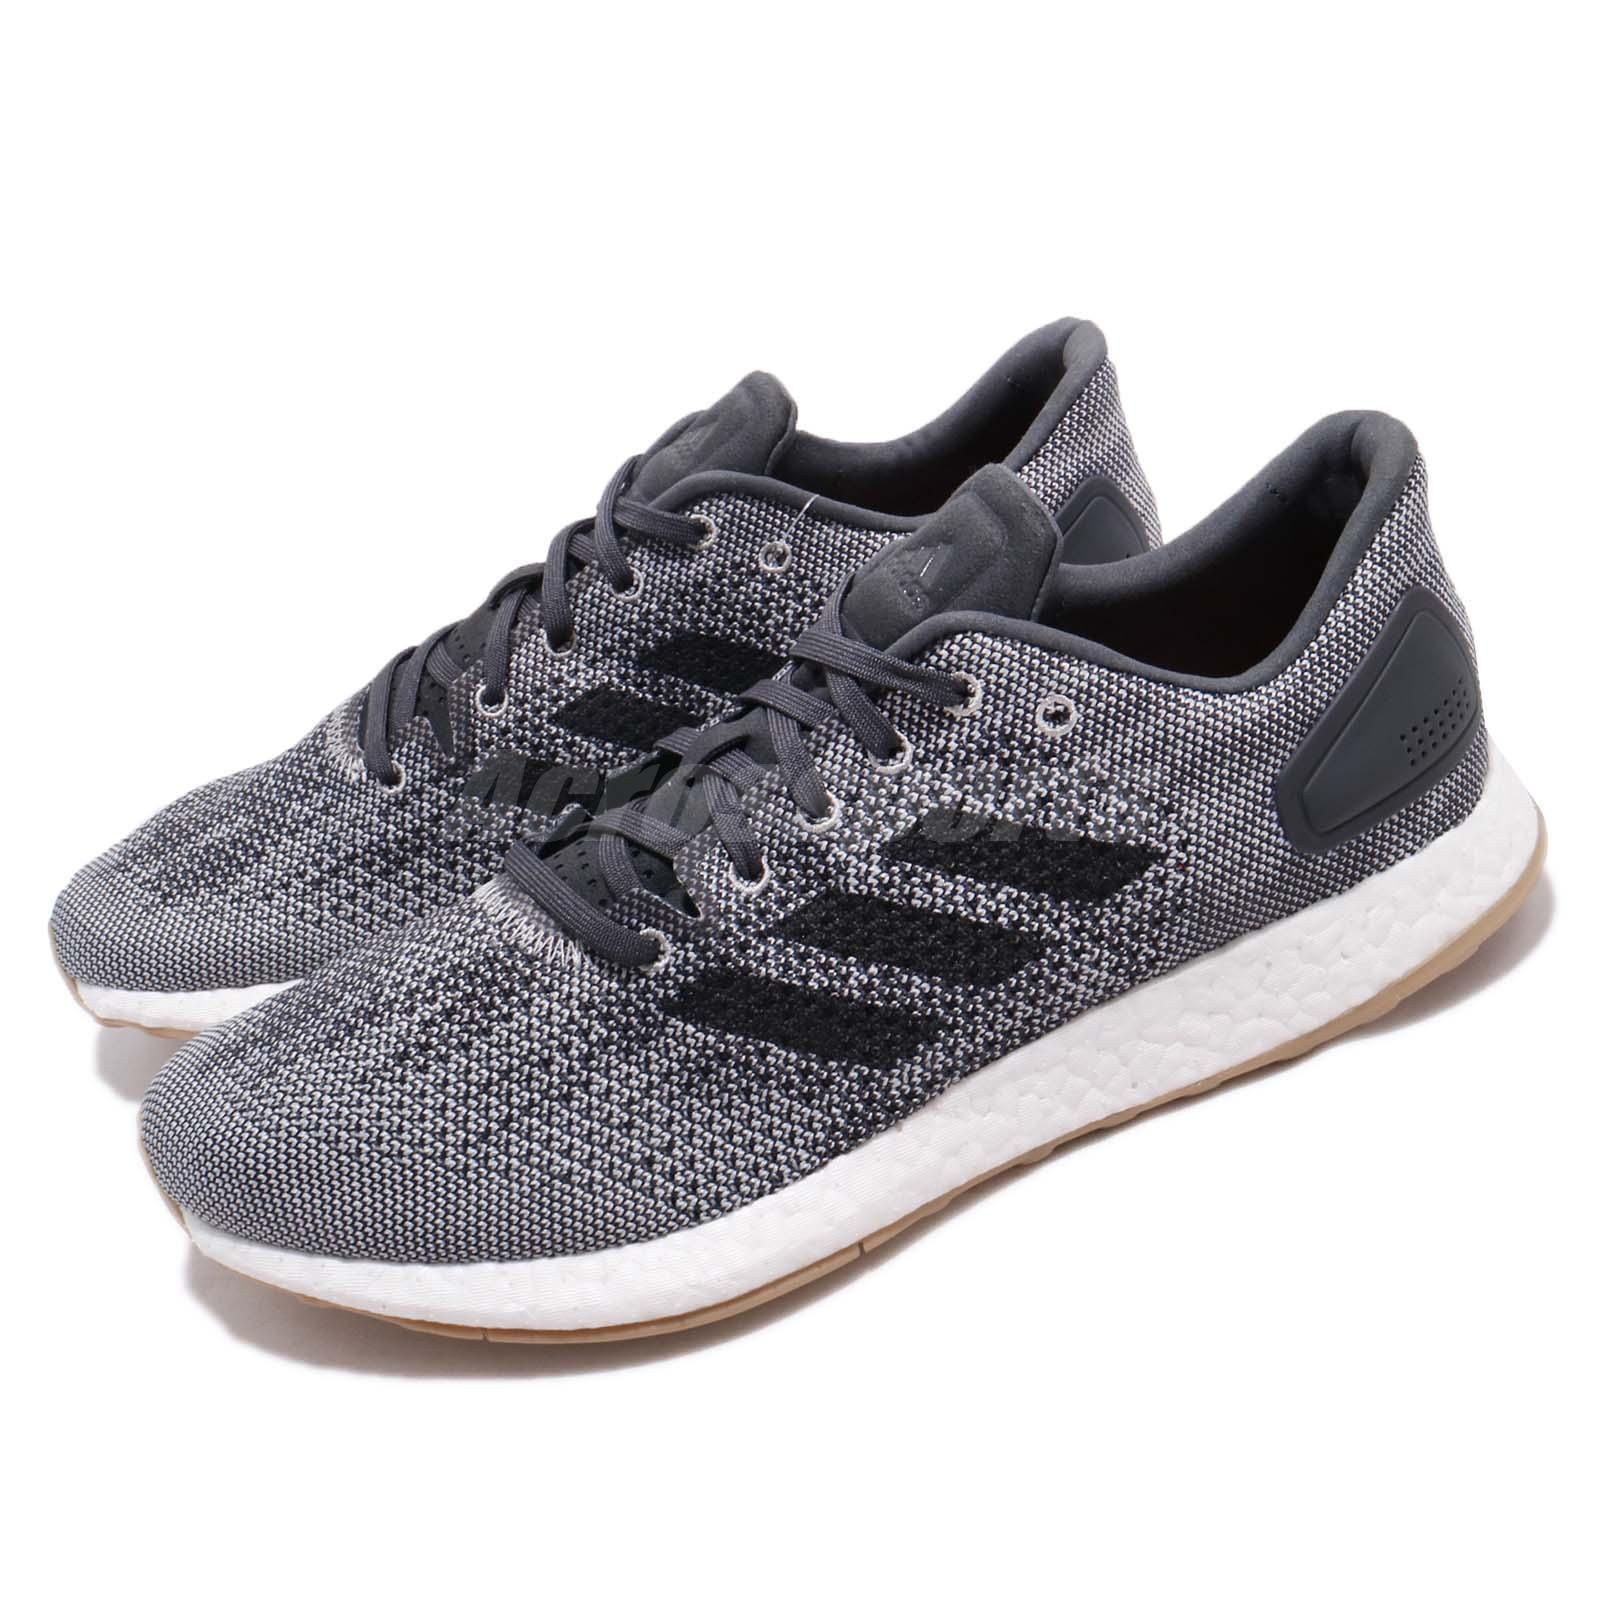 4974ca171d7c9 Details about adidas PureBoost DPR Boost Carbon Black Men Running Shoes  Sneakers CM8319